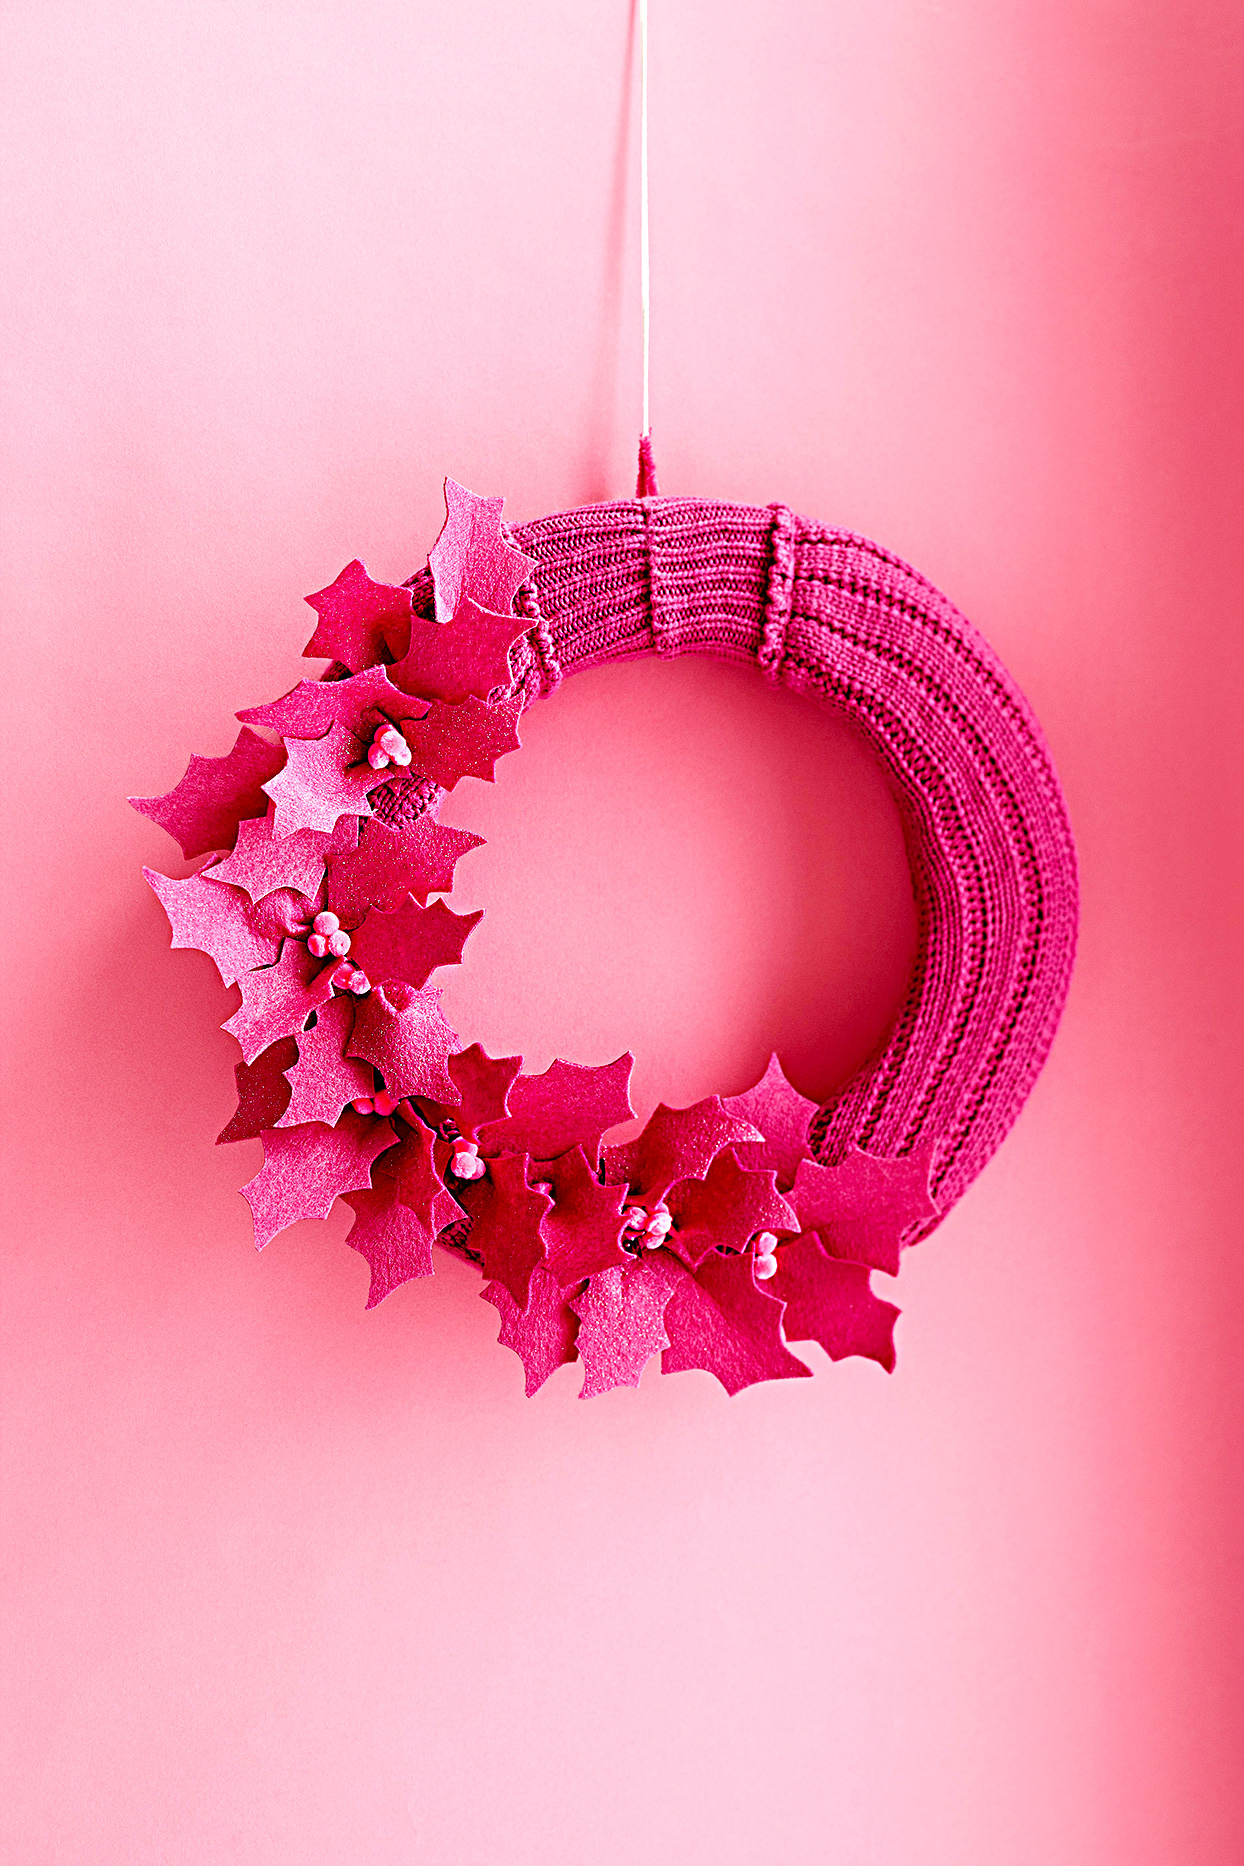 Pink wreath with holly leaves against pink wall